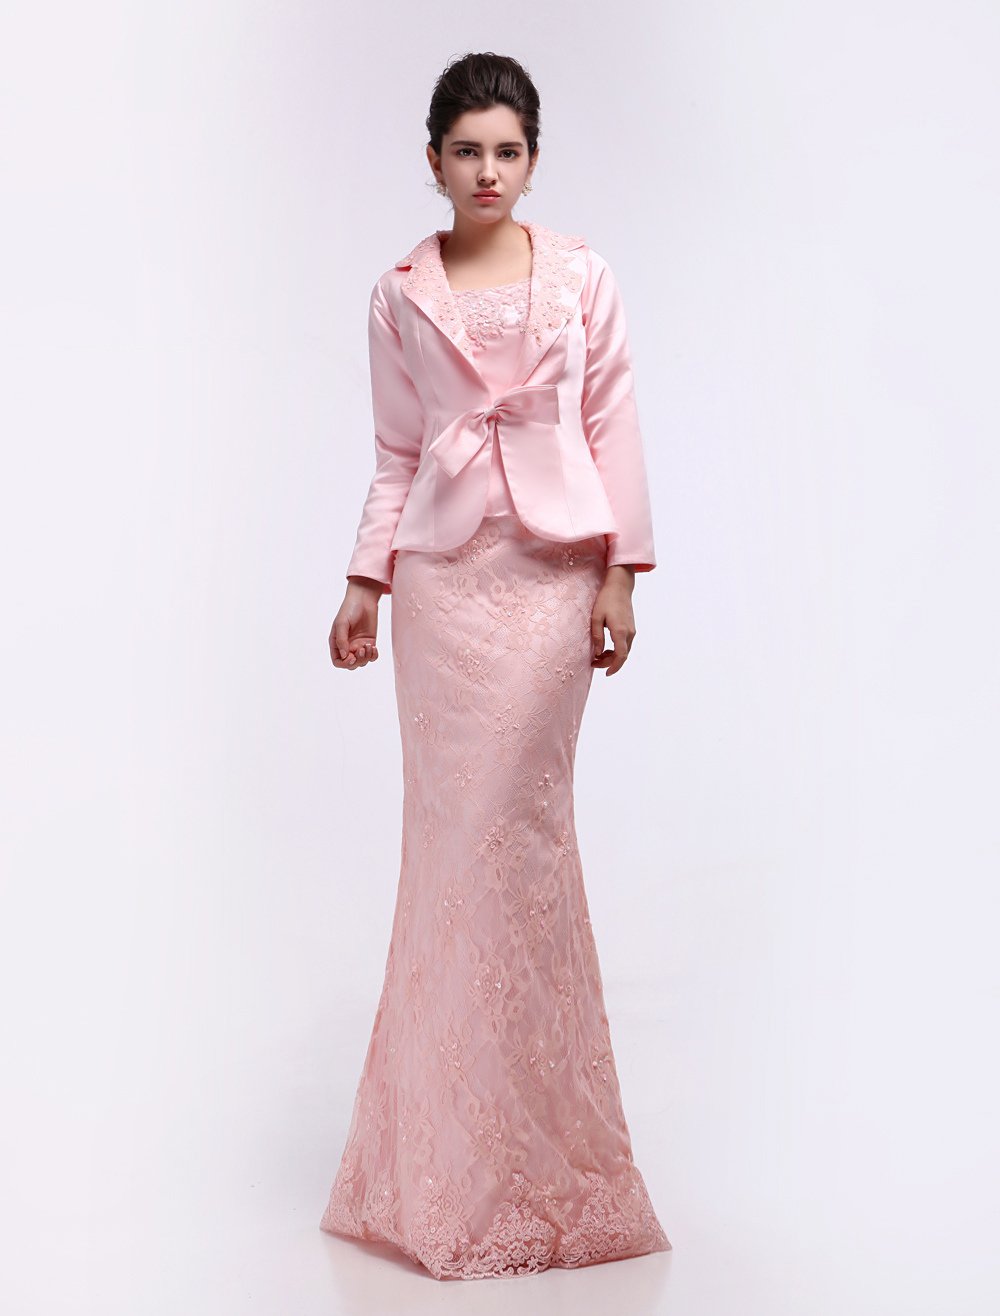 Pink Sheath Straps Neck Applique Mother of the Bride Dress